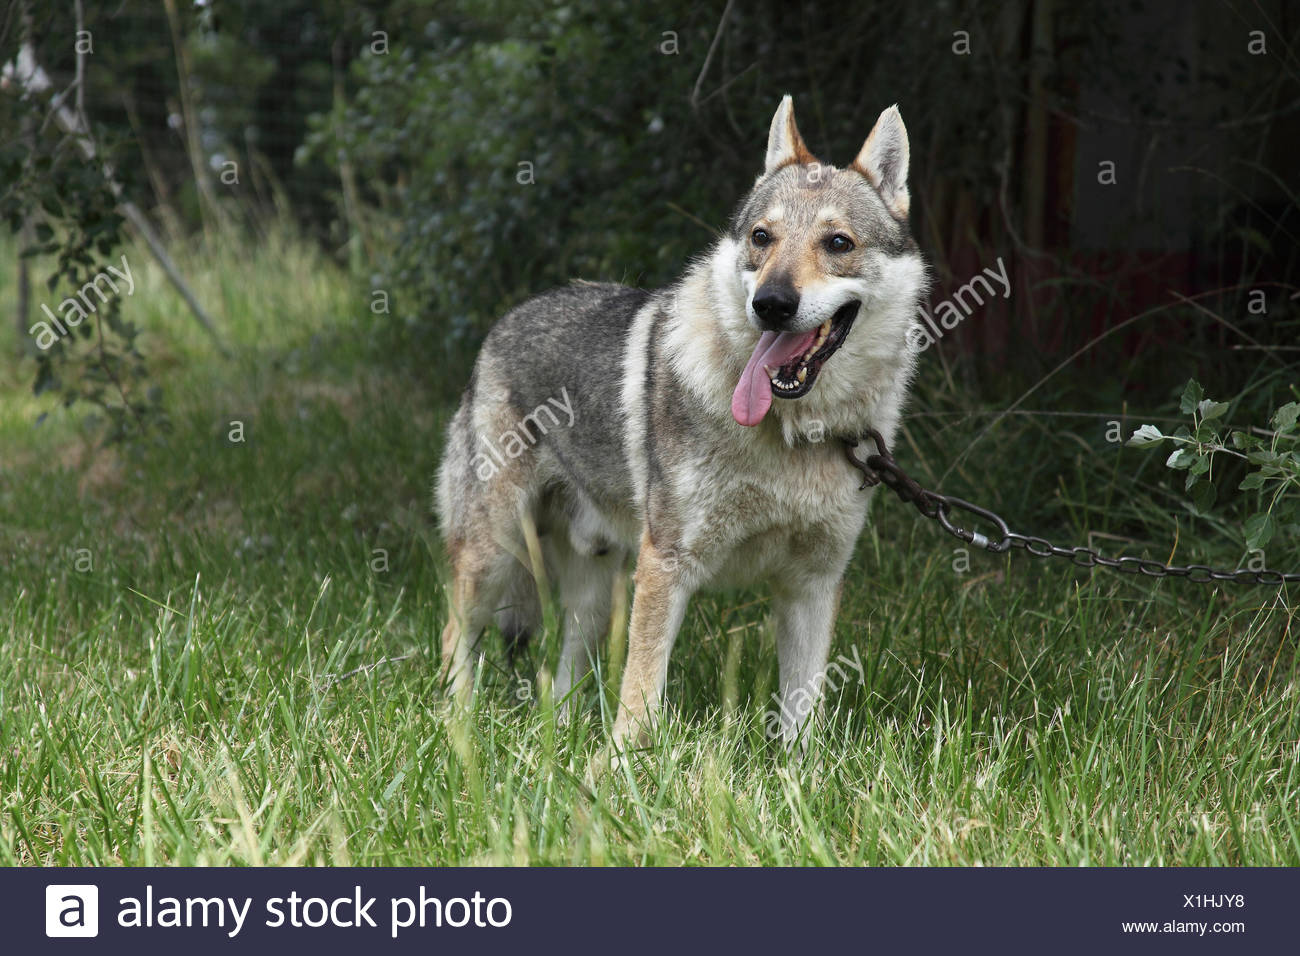 Czechoslovakian wolfdog attached to a chain - Stock Image